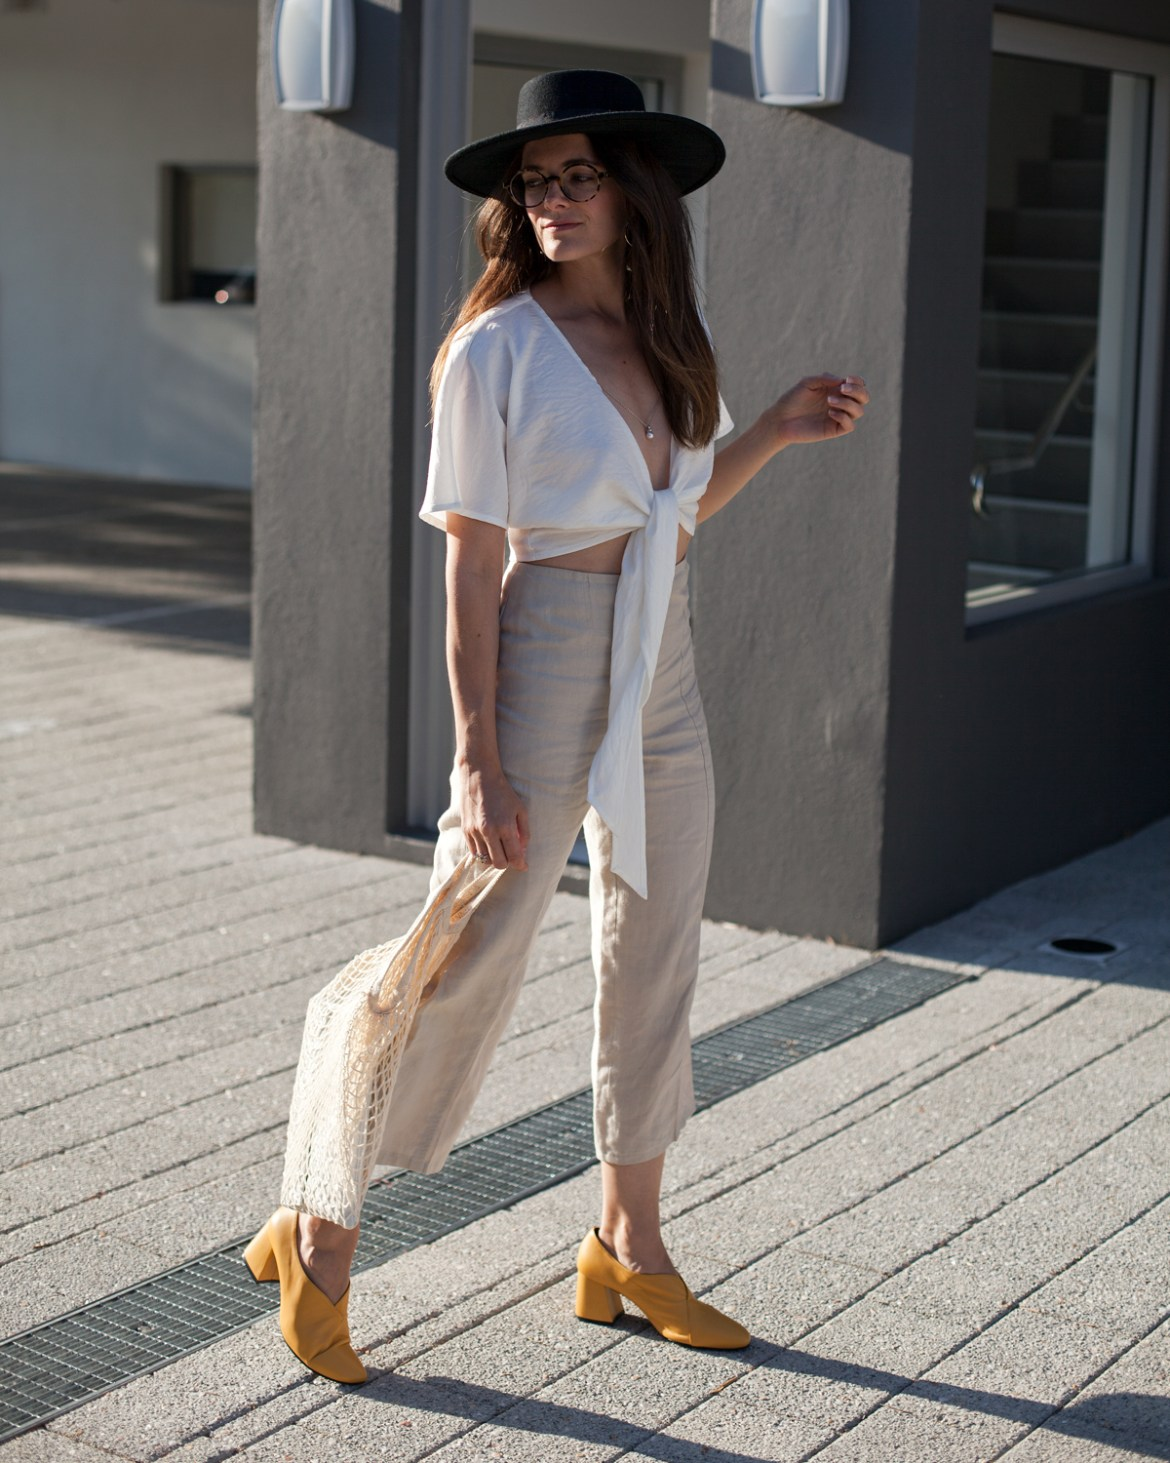 statement coloured pump heel EOD extraordinary ordinary day Tara pump heels in mustard worn Staple linen tie front top by Inspiring Wit blogger Jenelle